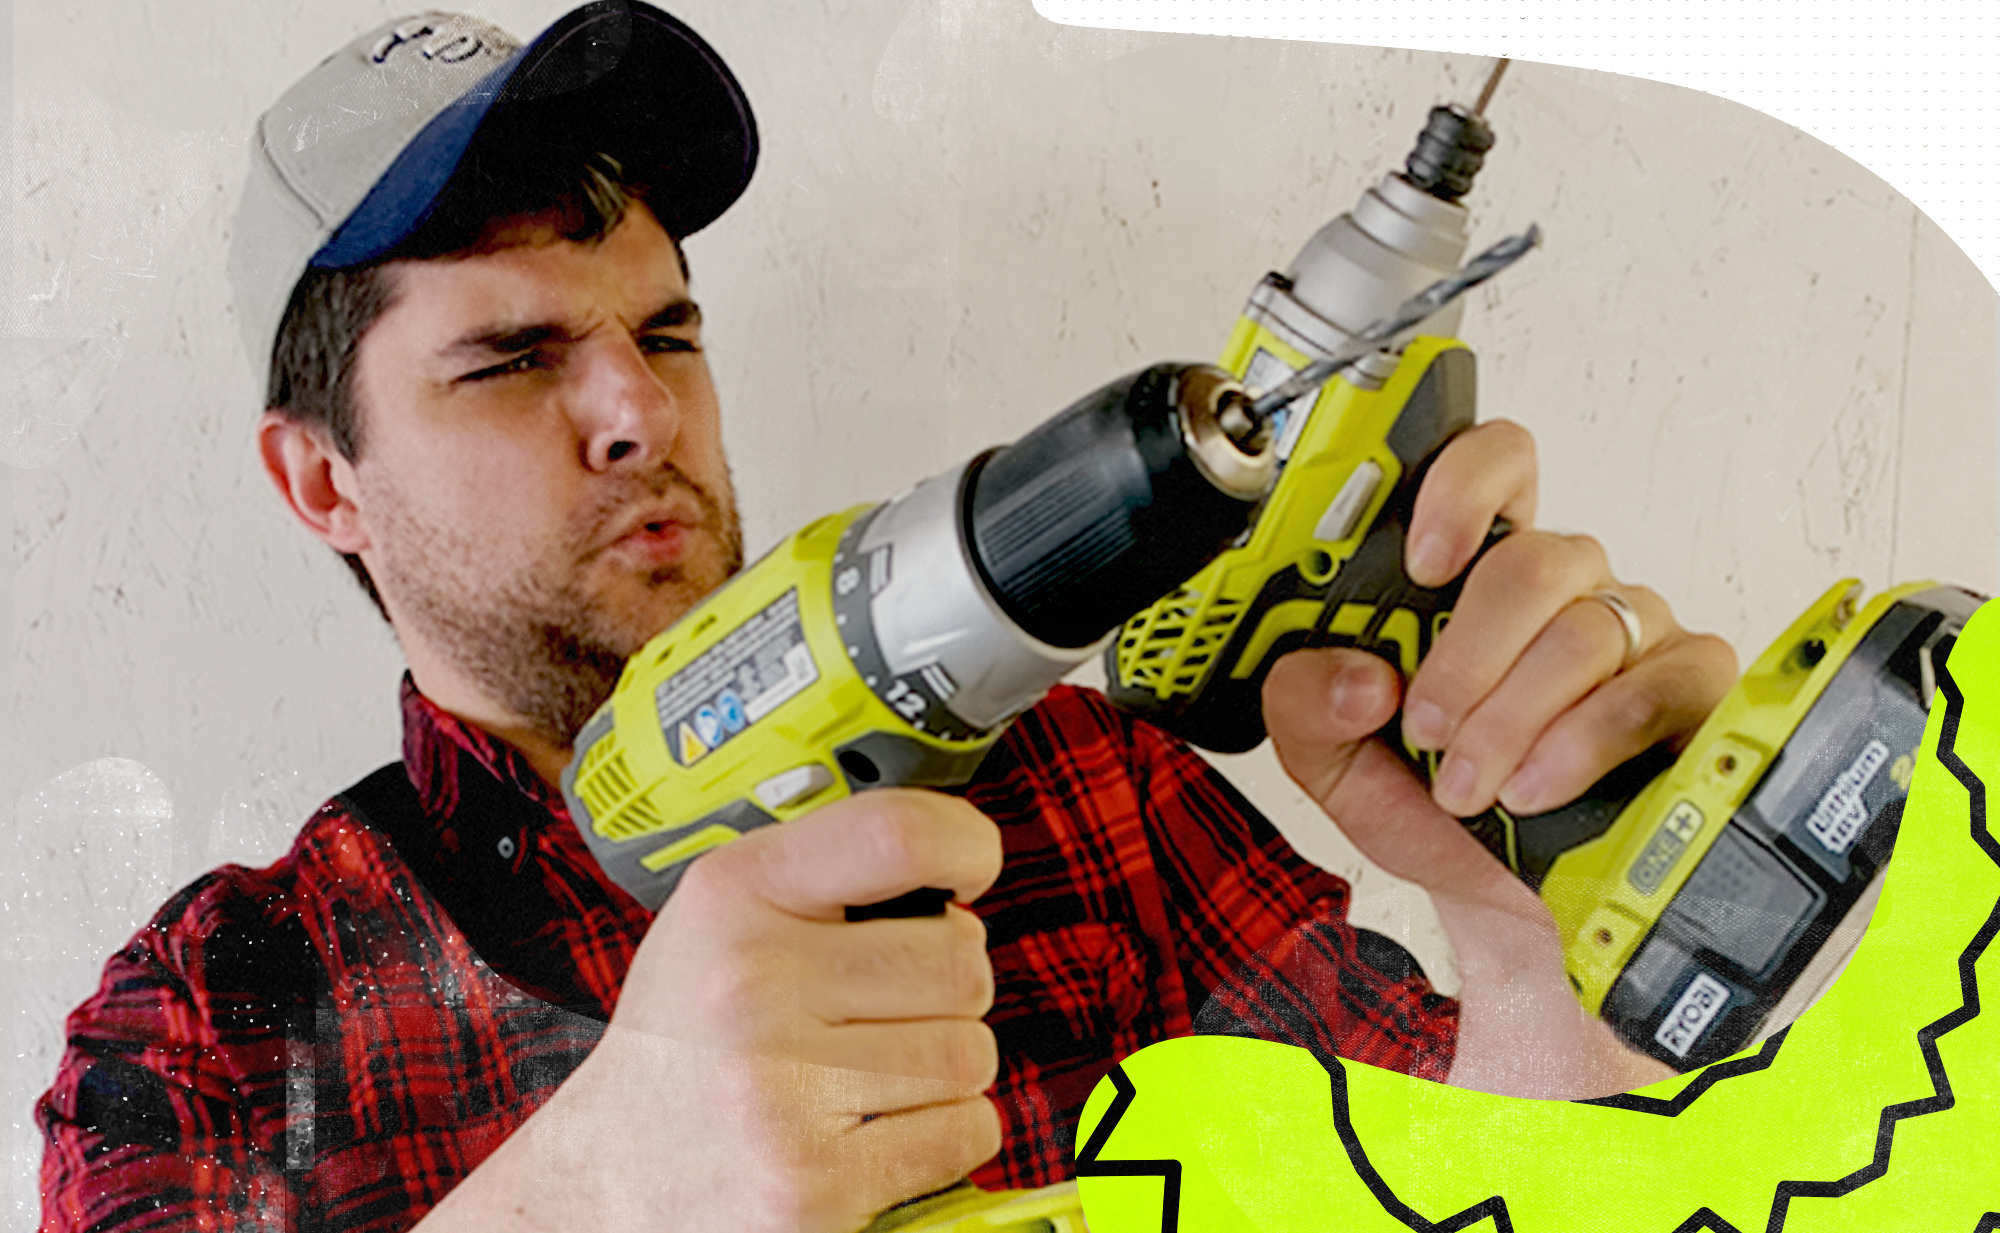 Photo of author in flannel shirt and baseball cap holding two power drills like recently fired pistols.